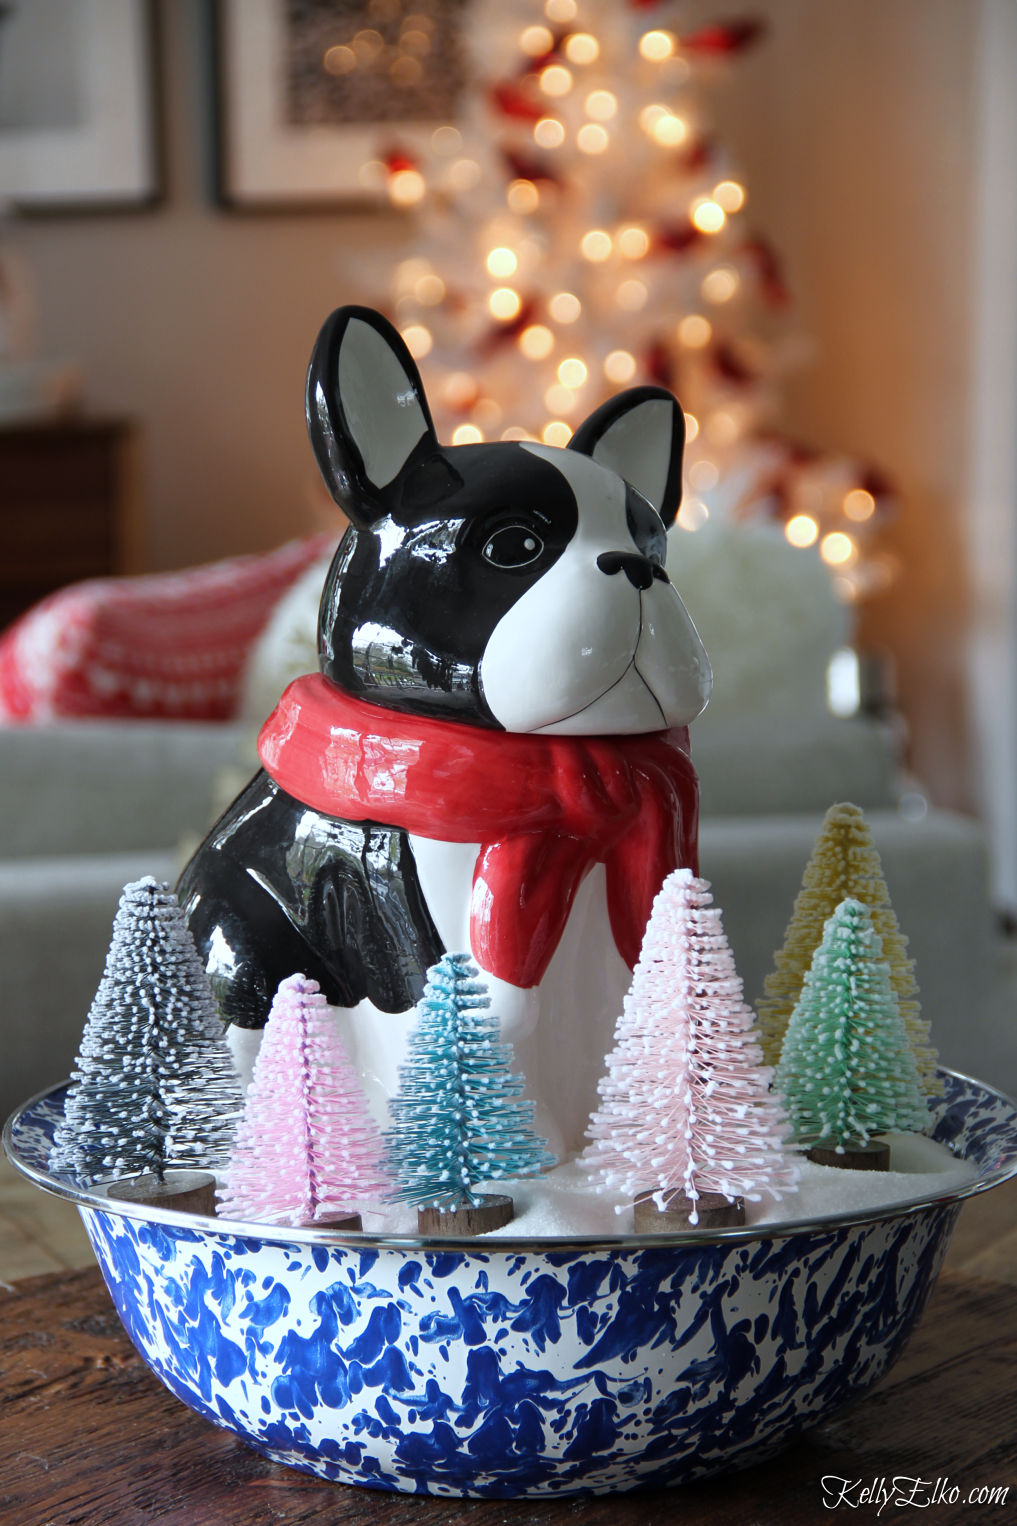 Love this little dog French Bulldog cookie jar surrounded by bottle brush trees for Christmas kellyelko.com #frenchbulldog #christmasdog #christmasdecor #christmascenterpiece #whimsicalchristmas #bottlebrushtrees #vintagechristmas